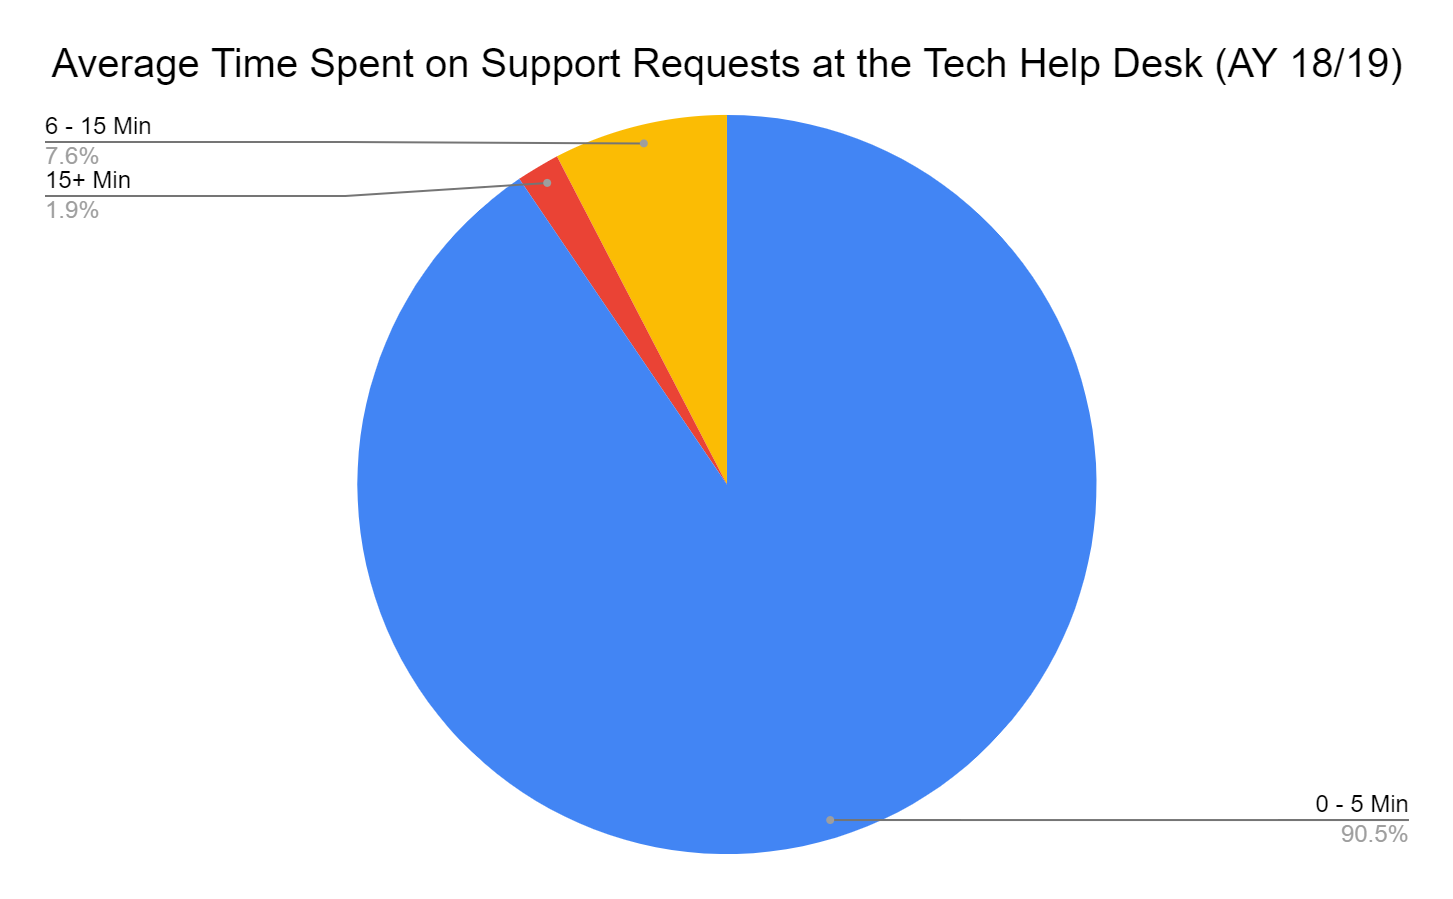 Time to resolution for support requests